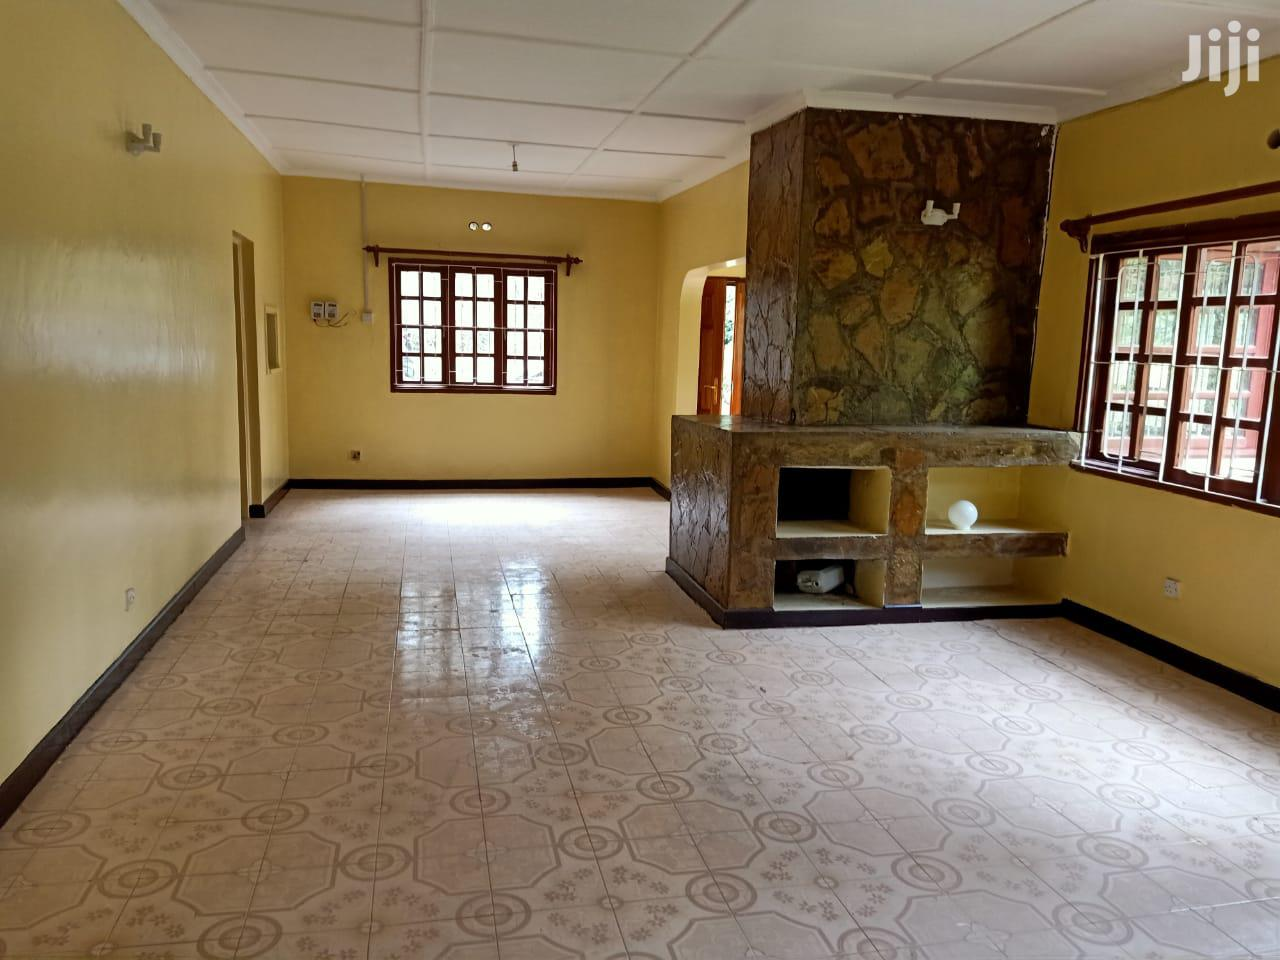 4 Bedroom Mansion Own Compound At Thome Estate   Houses & Apartments For Rent for sale in Roysambu, Nairobi, Kenya